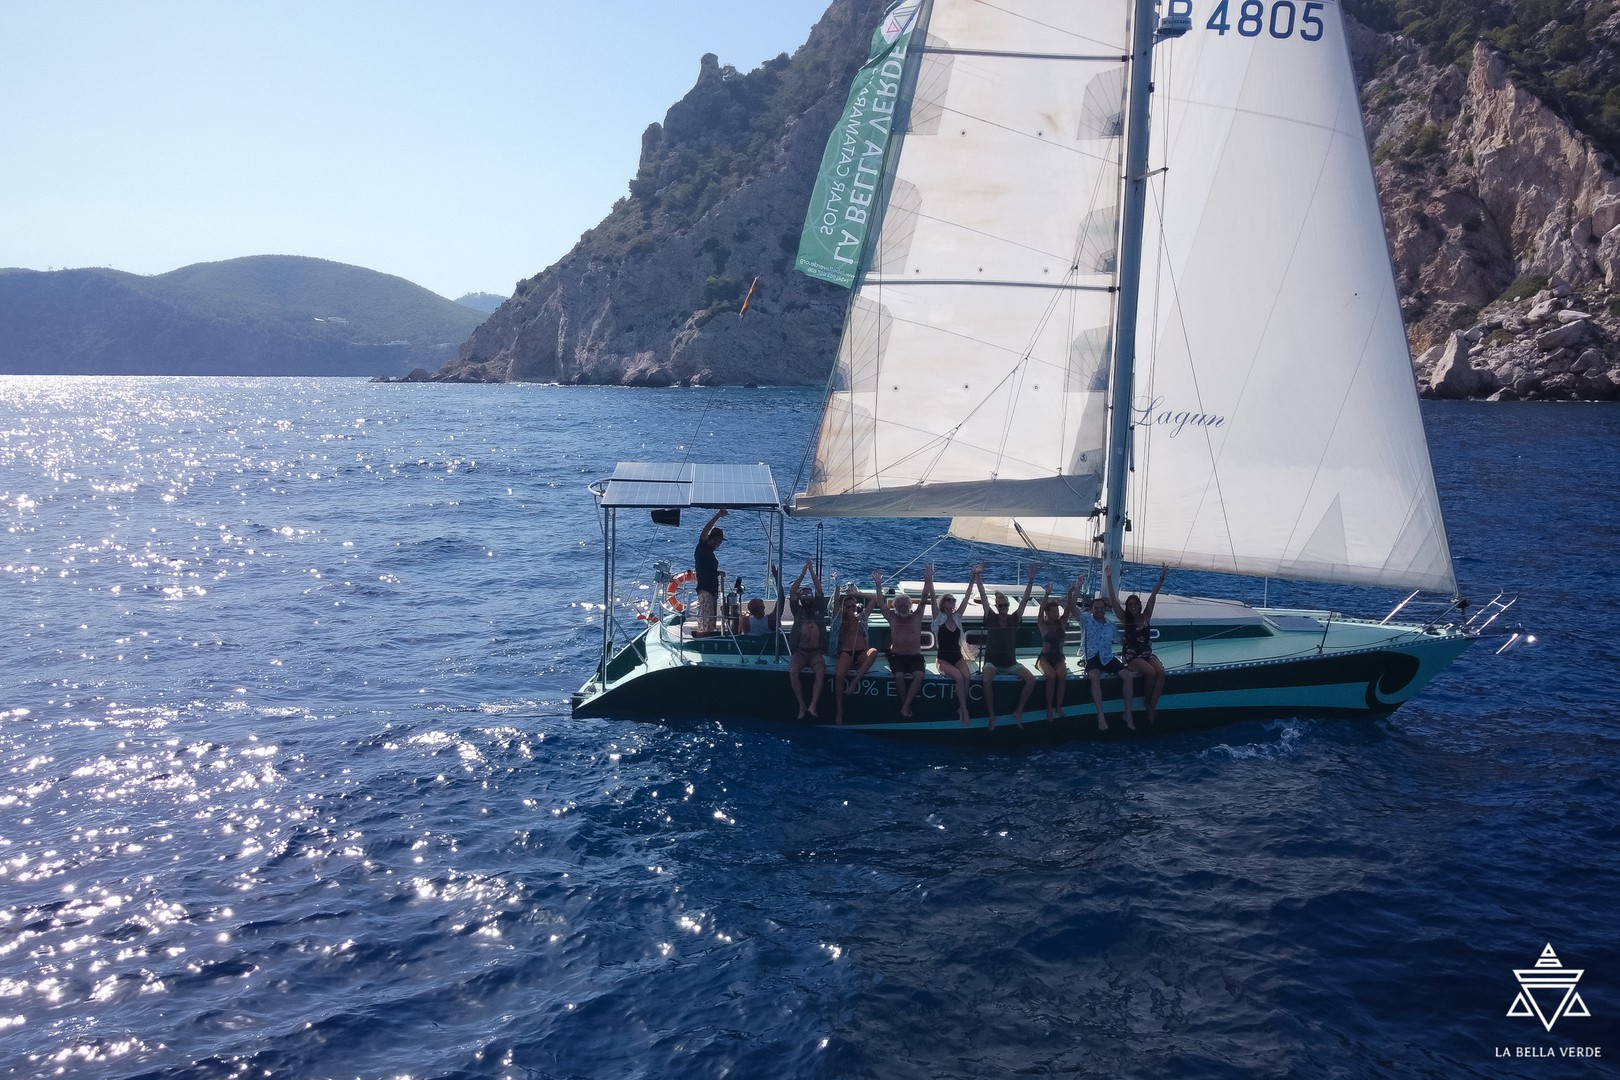 Winter Sailing Course - 1 DAY